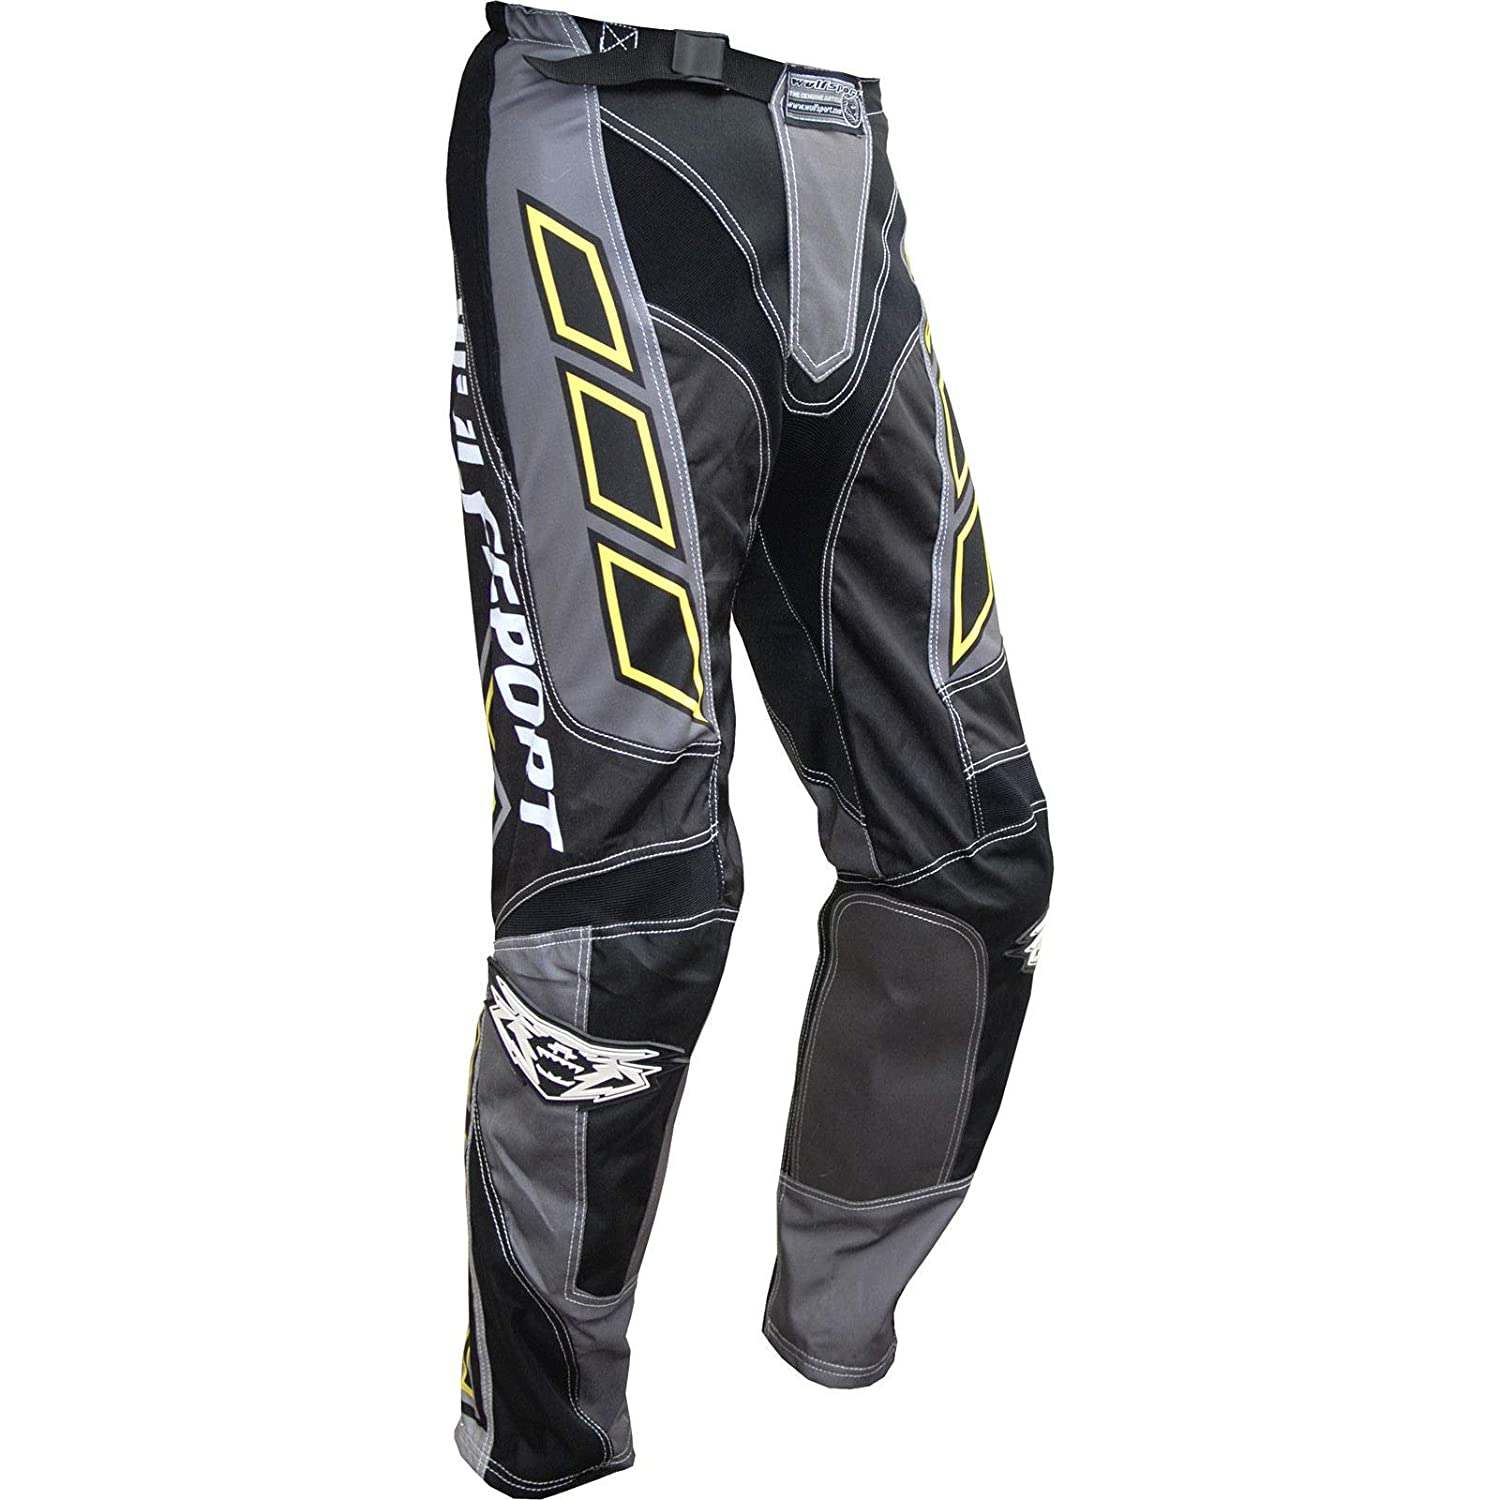 Shirt M /& Pants 32 Wulfsport Axium Motorbike Off Road Quad Adult MX Sports Jersey and Trouser Suit Motocross Clothing Red